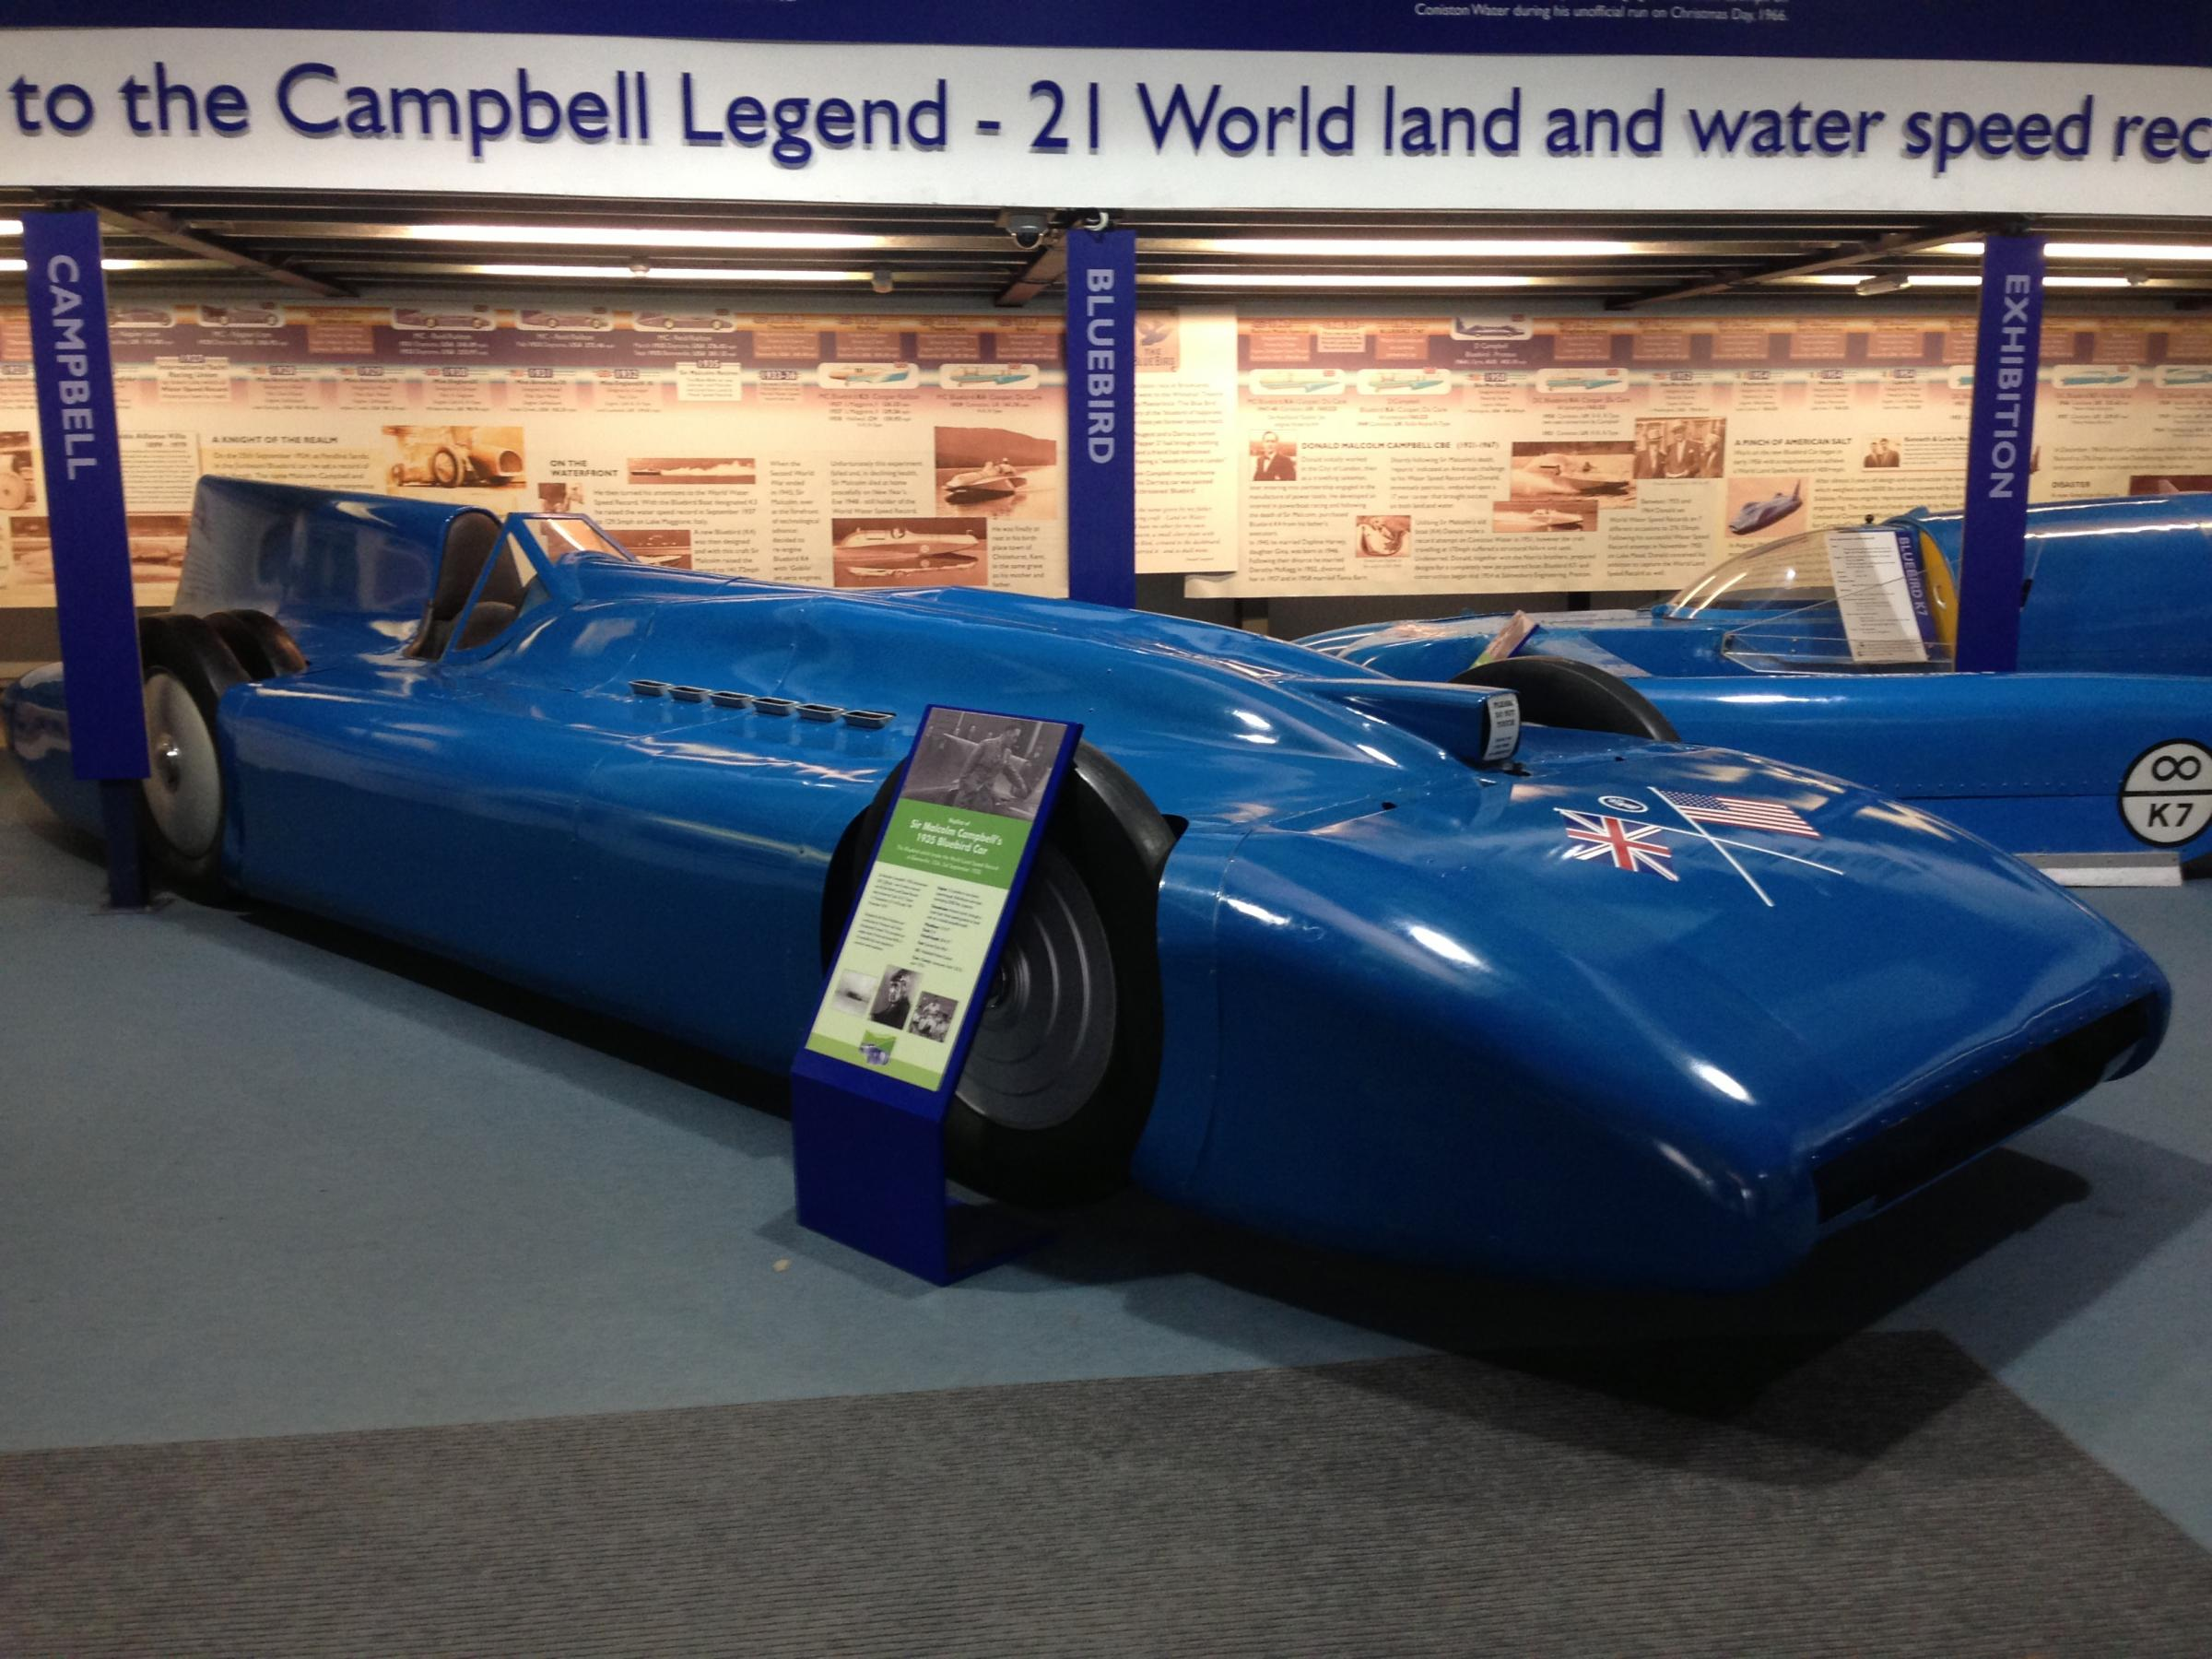 HISTORY: Sir Malcolm Campbell's 1935 Bluebird car